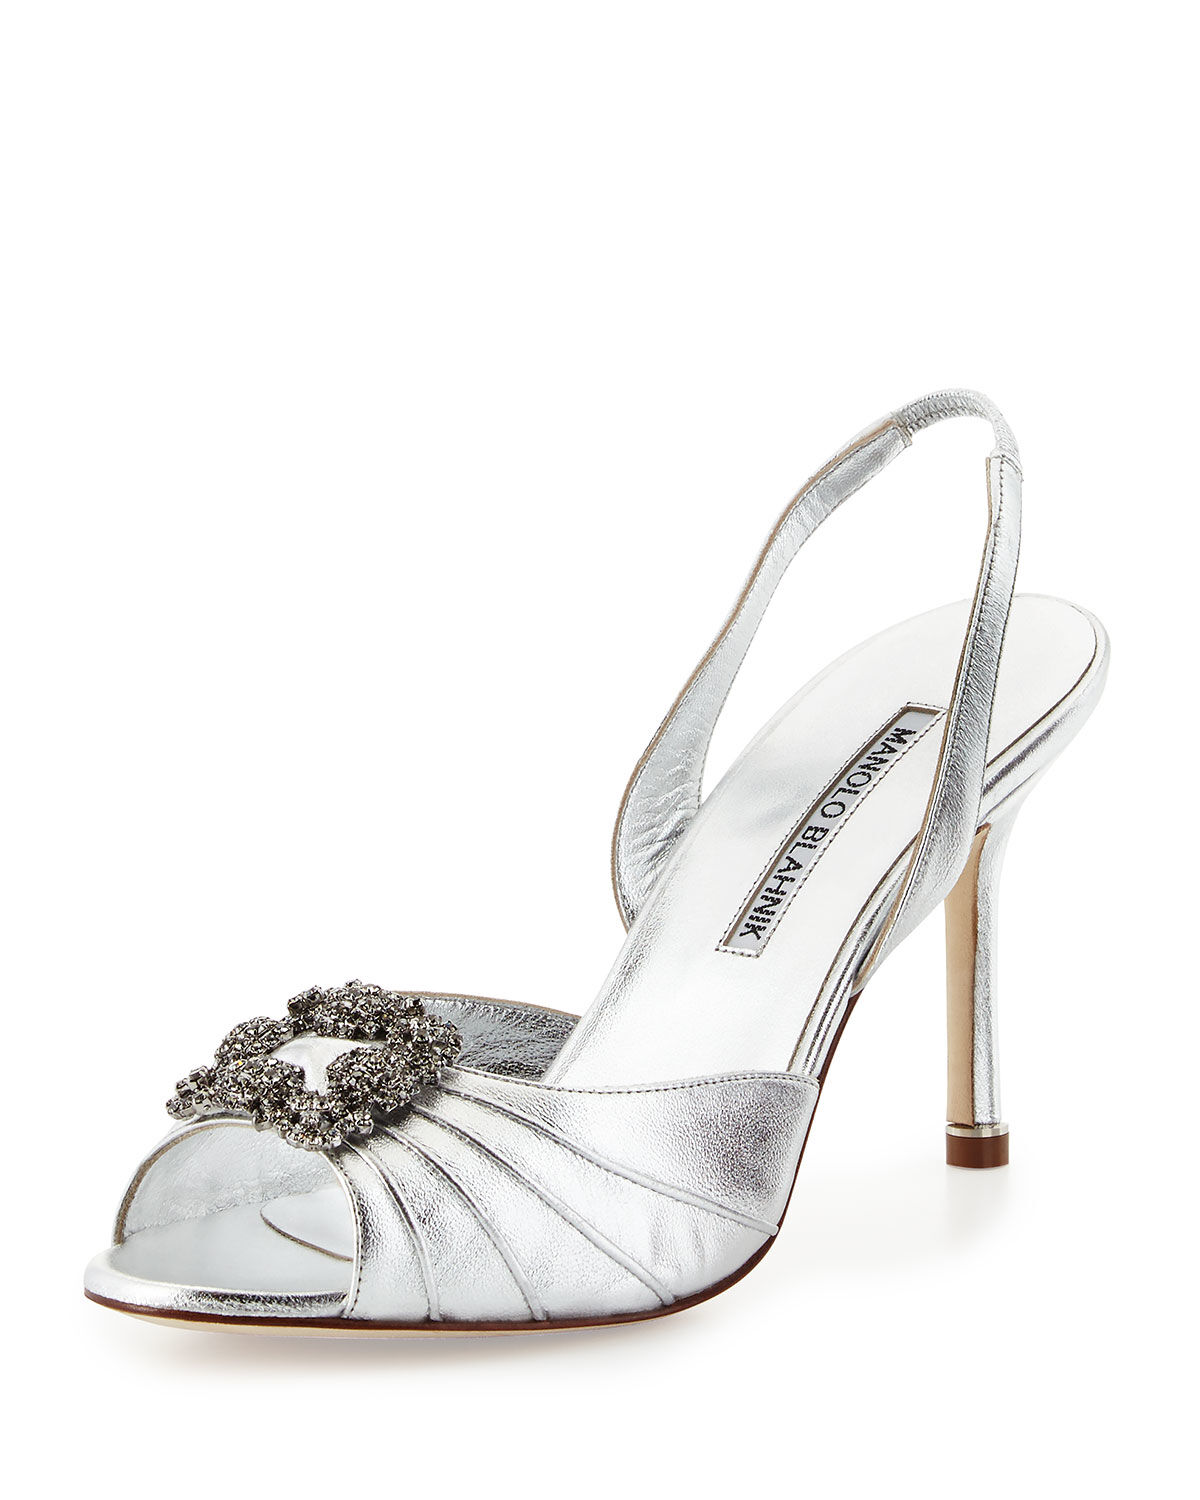 935 NEW MANOLO BLAHNIK Cassia SILVER HANGISI  JEWELED Sandals SHOES Wedding 39